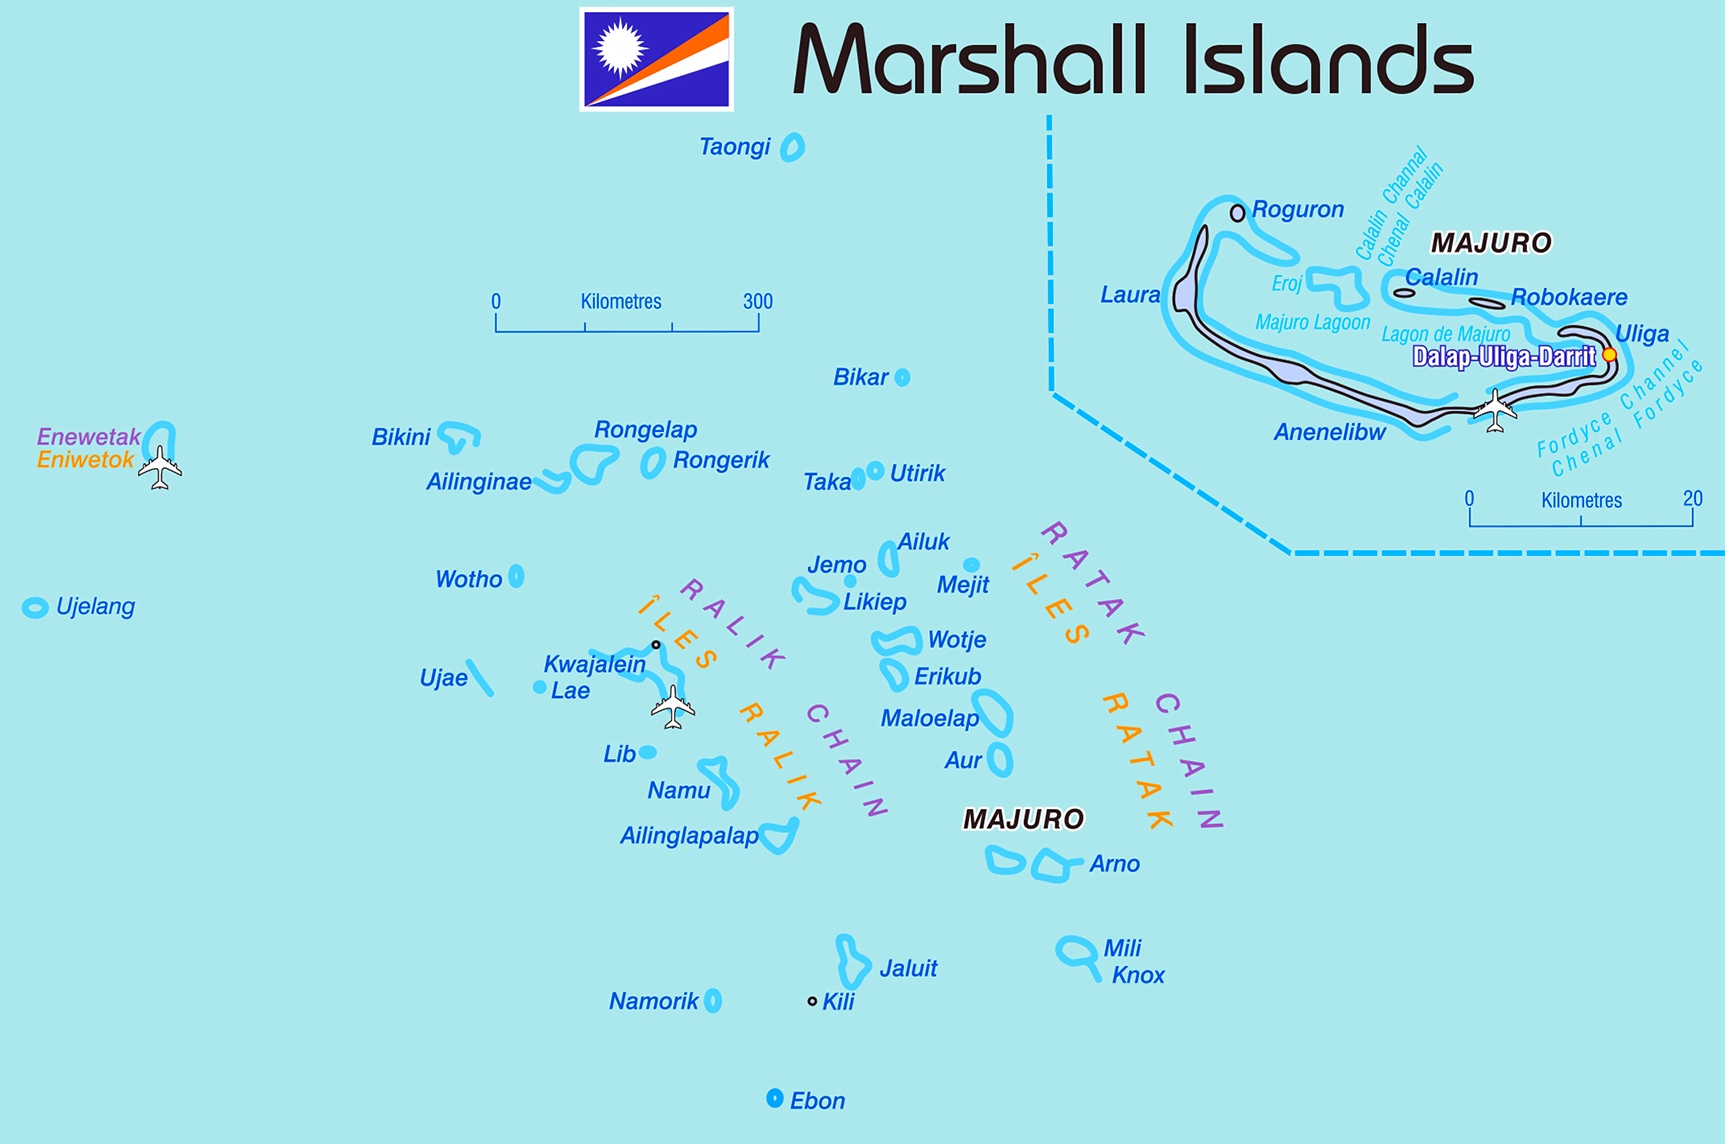 Detailed map of Marshall Islands